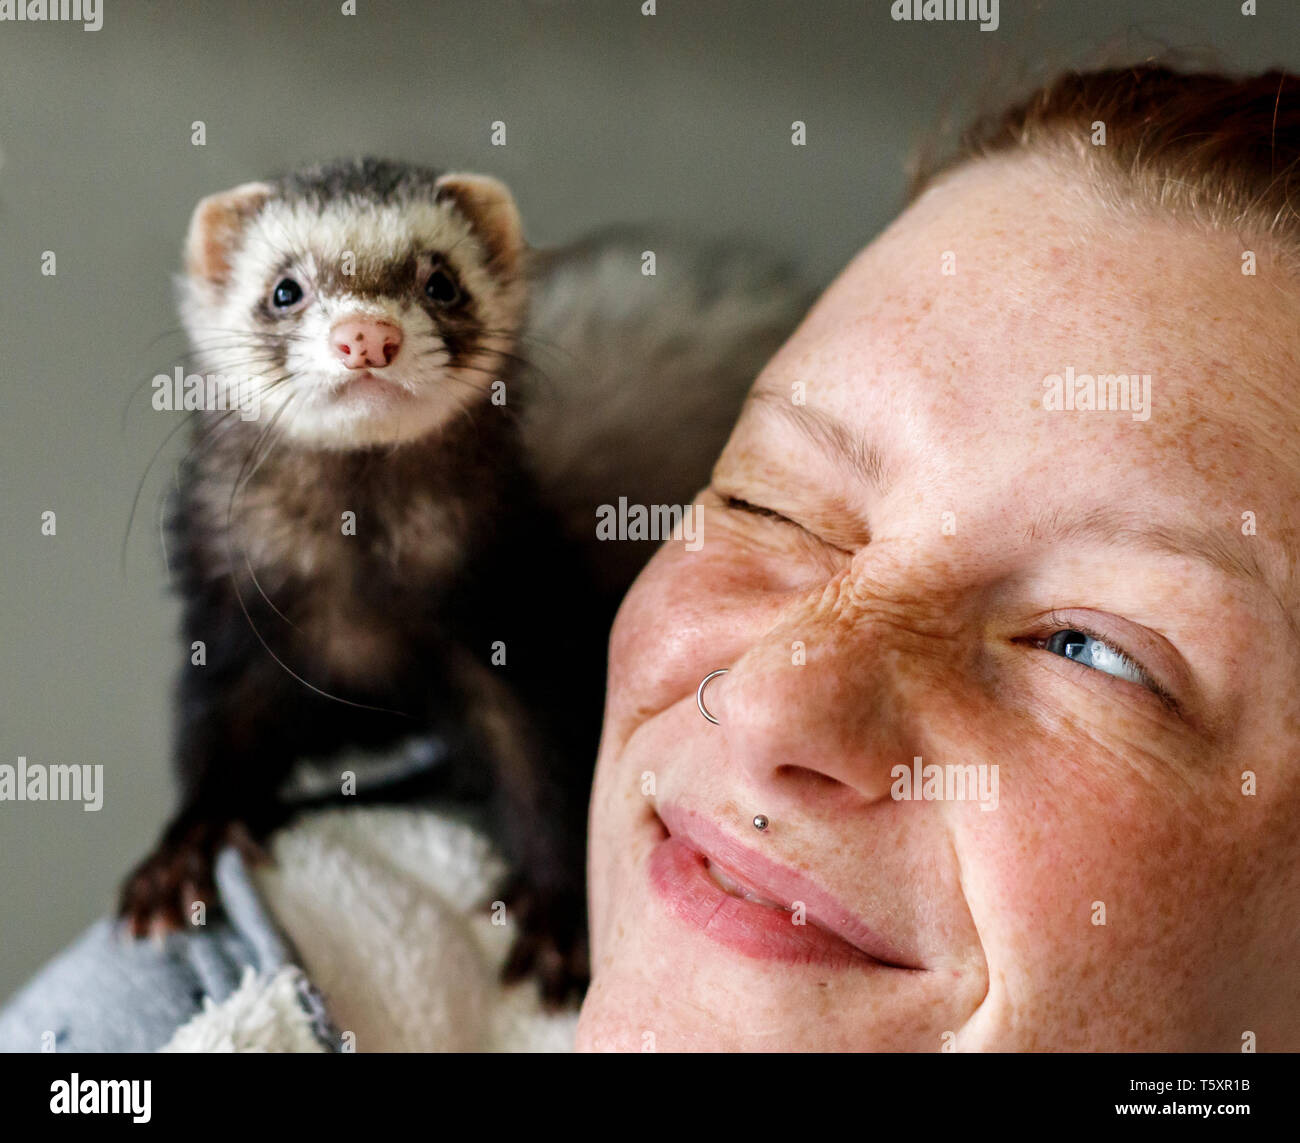 Young attractive red head girl with freckles smiling at little ferret pet on her shoulder Stock Photo